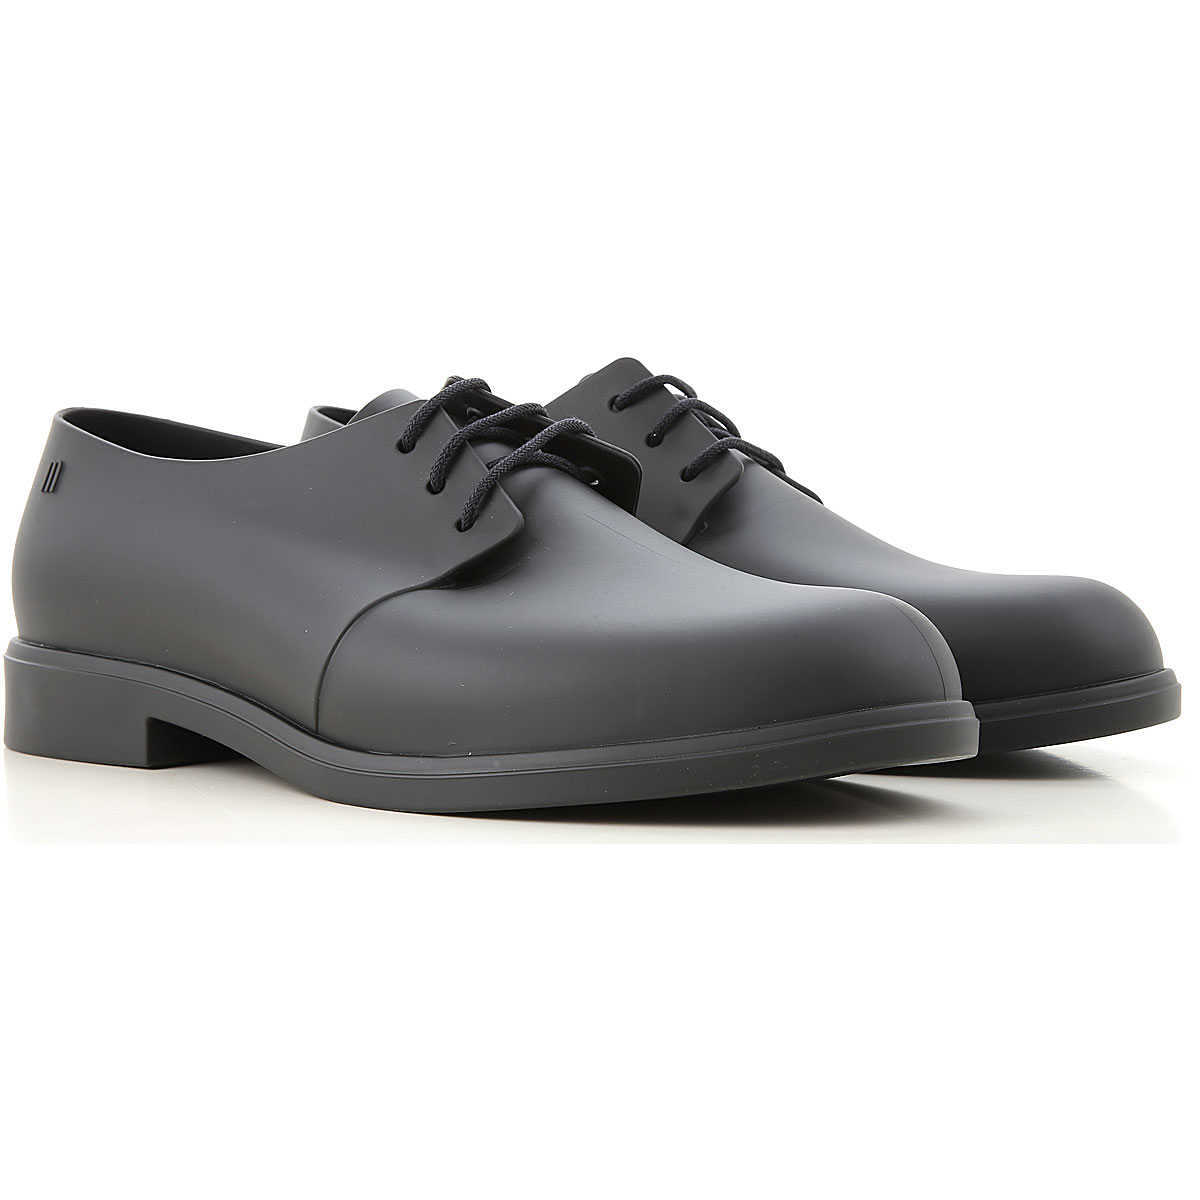 Melissa Lace Up Shoes for Men Oxfords Derbies and Brogues Canada - GOOFASH - Mens FORMAL SHOES